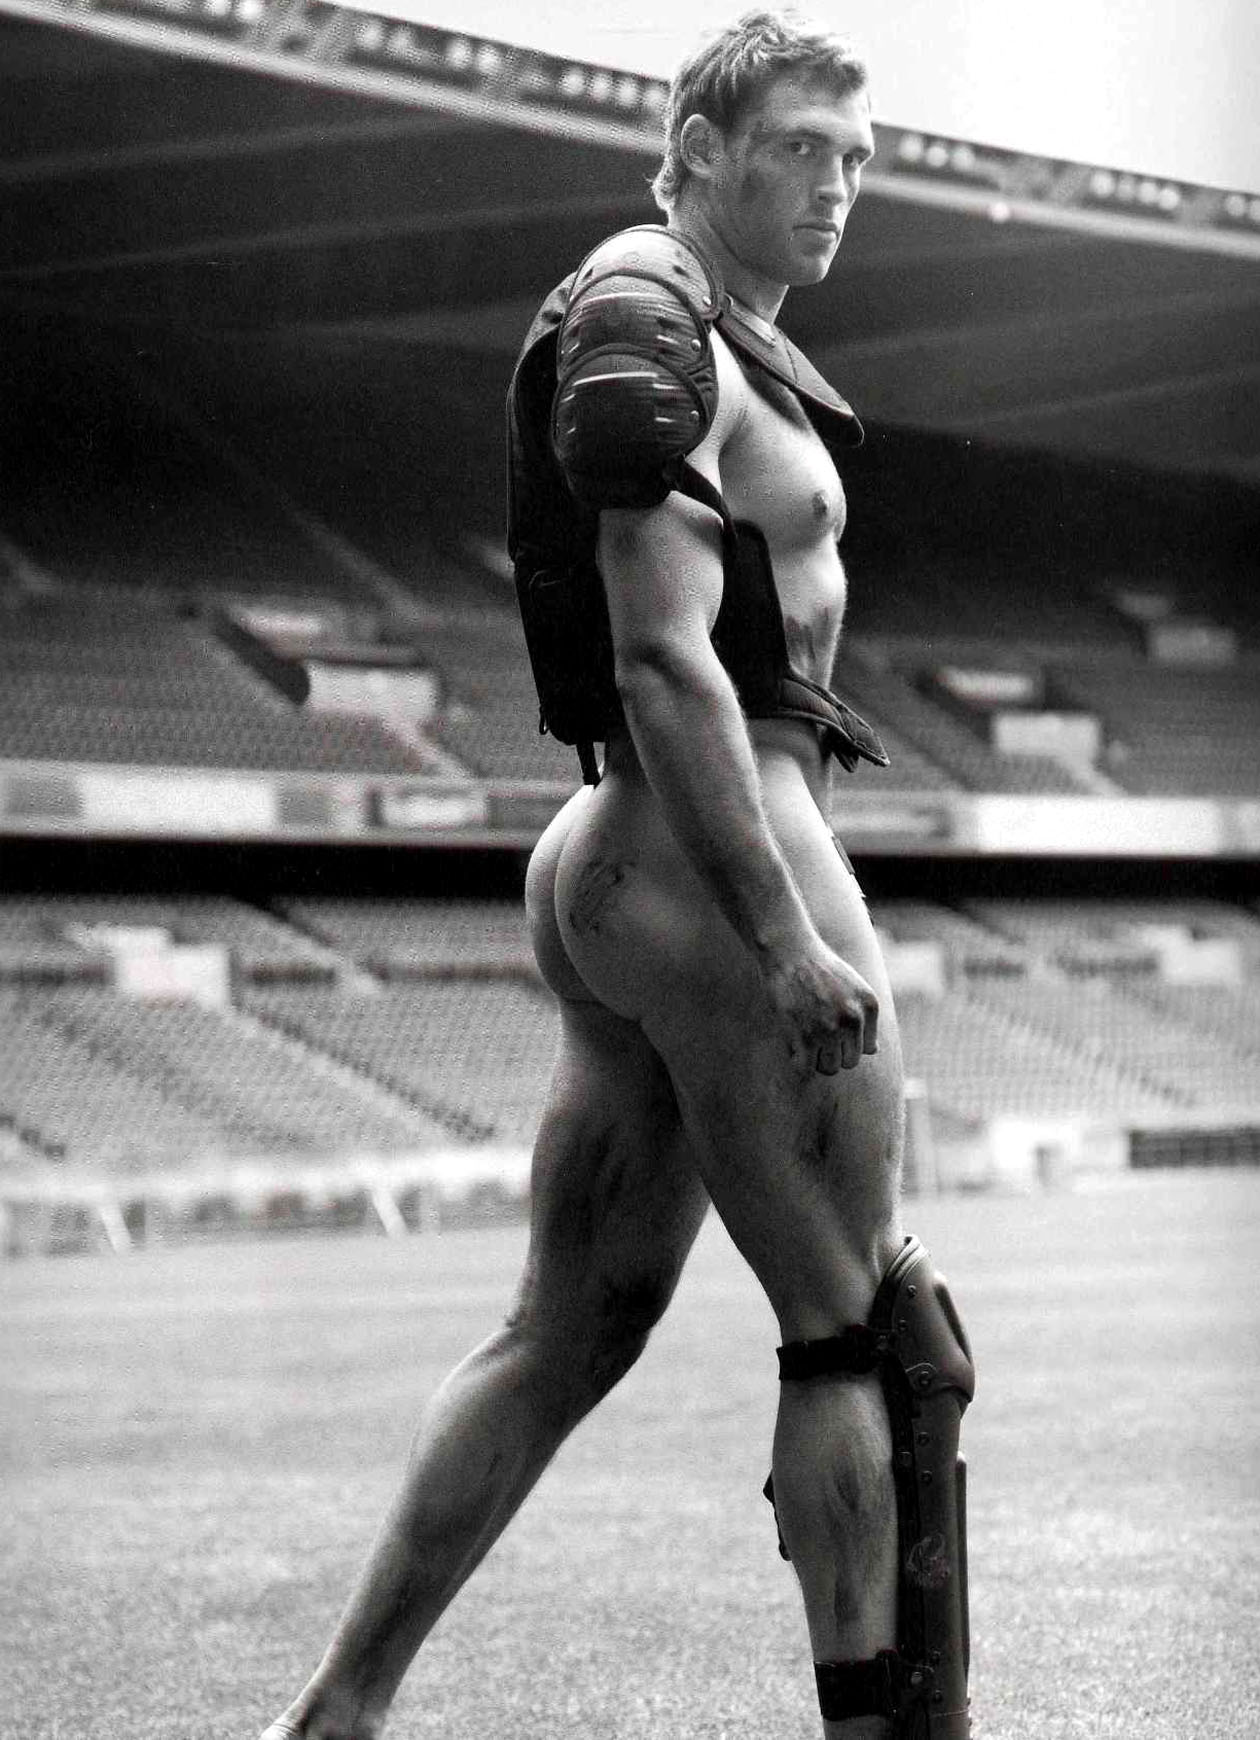 Hot man Dieux stade 2007